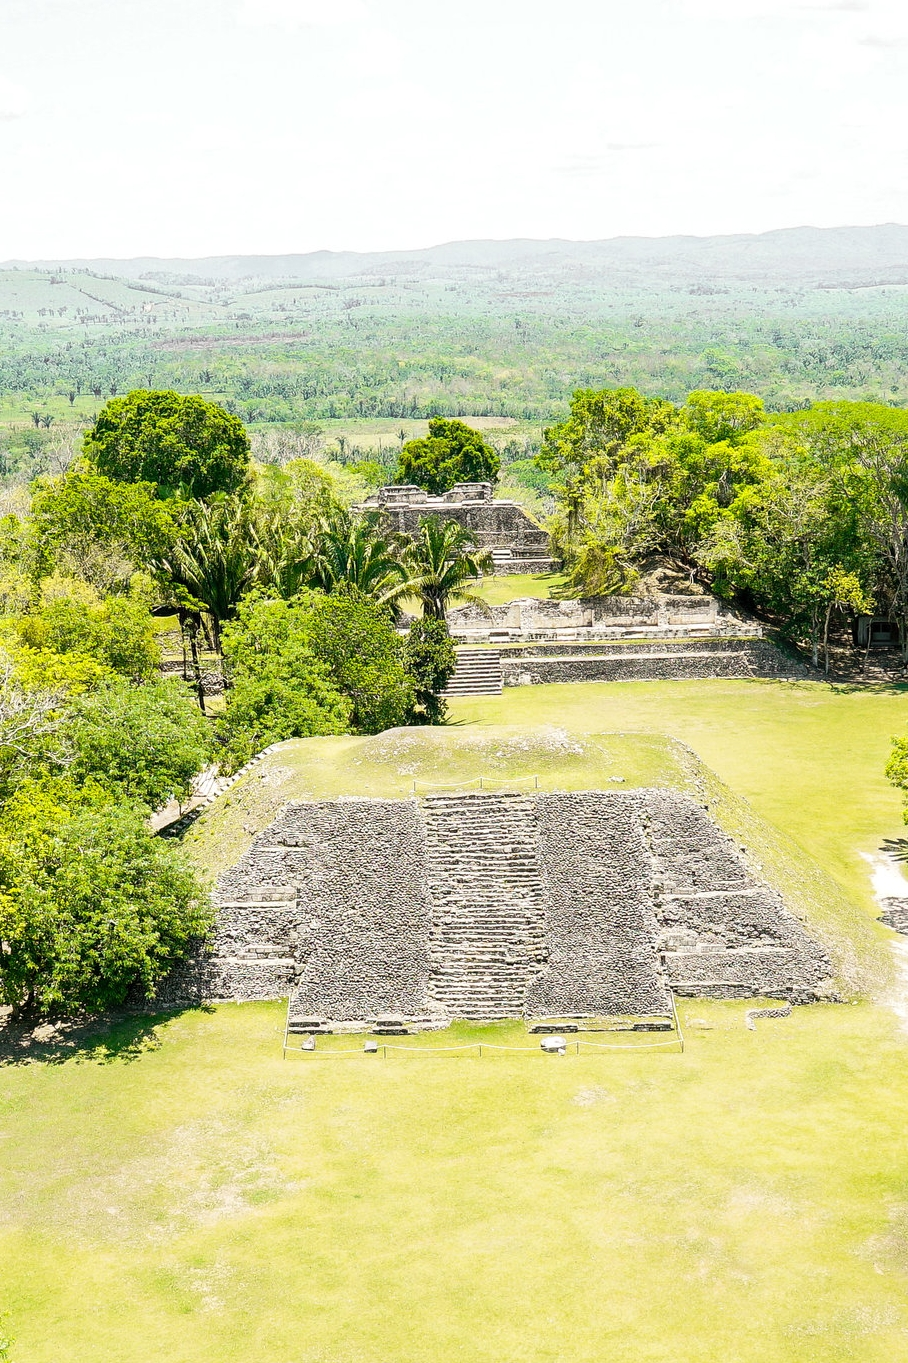 Cahal Pech & Xunantunich - Enjoy the views during the three-hour drive down the Hummingbird Highway. The reward for climbing to the top of El Castillo is a spectacular view of the Cayo District and Petén Guatemala.